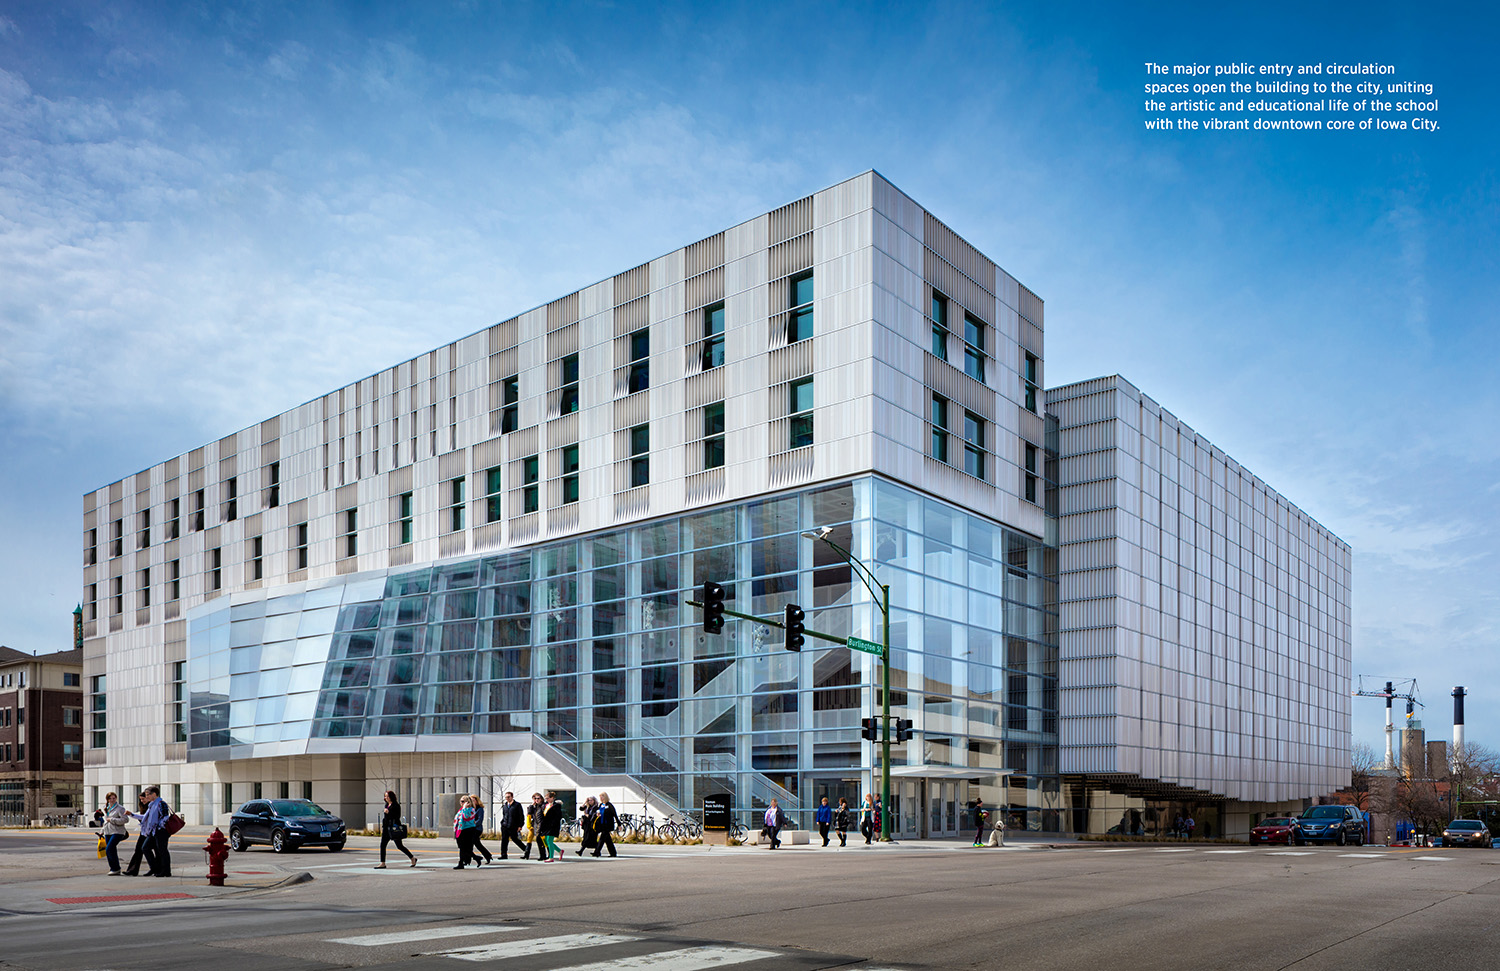 The major public entry and circulation spaces open the building to the city, uniting the artistic and educational life of the school with the vibrant downtown core of Iowa city. Tim Griffith